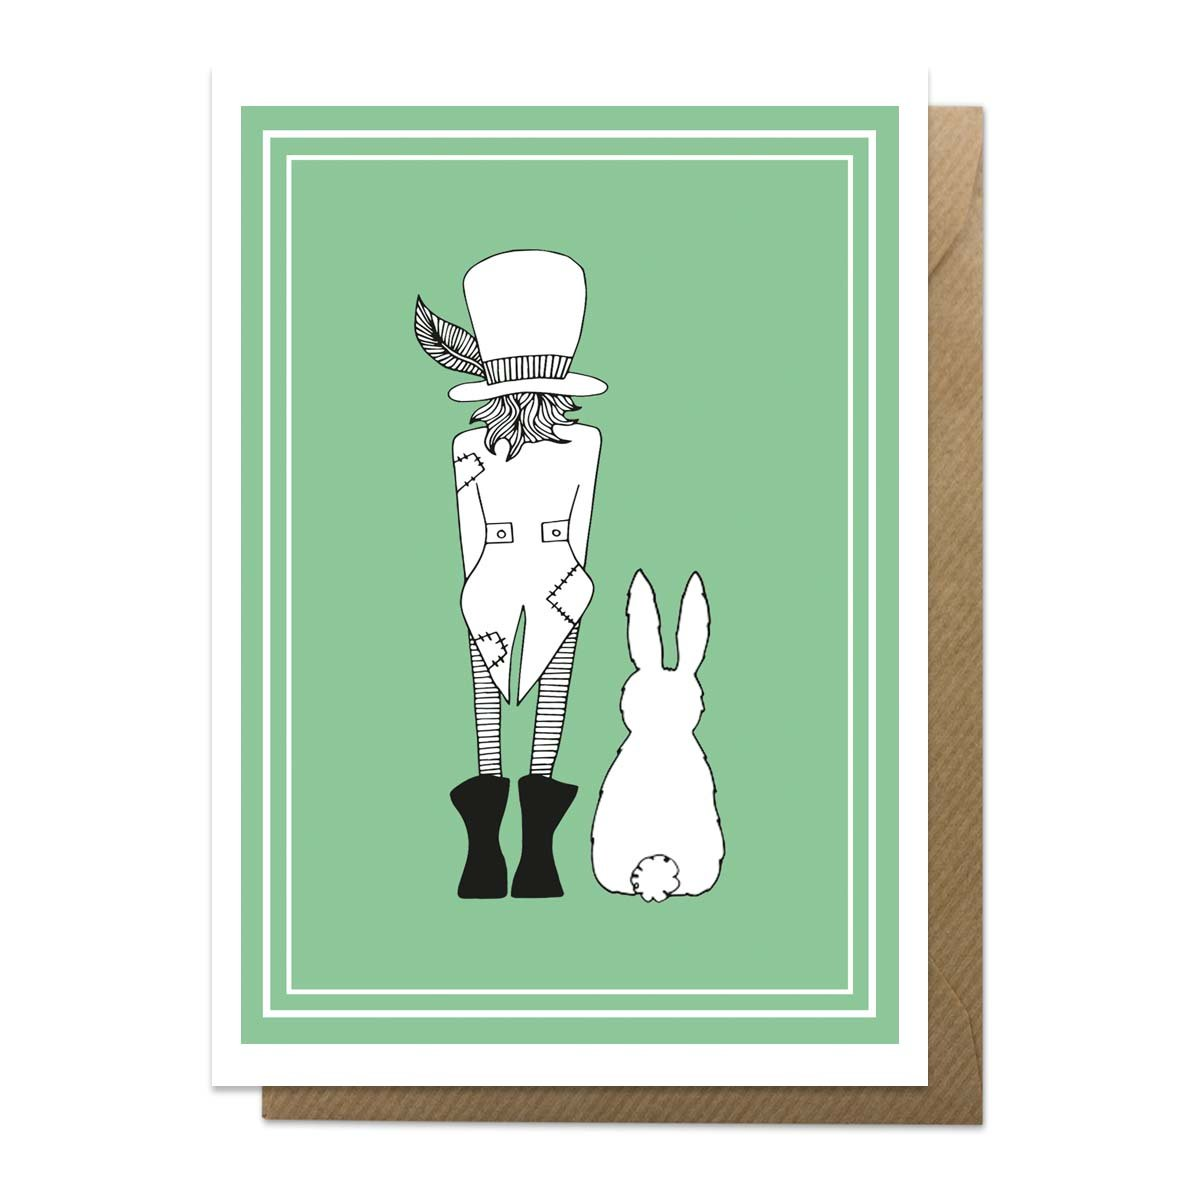 Green greeting card with an illustration of Mad Hatter